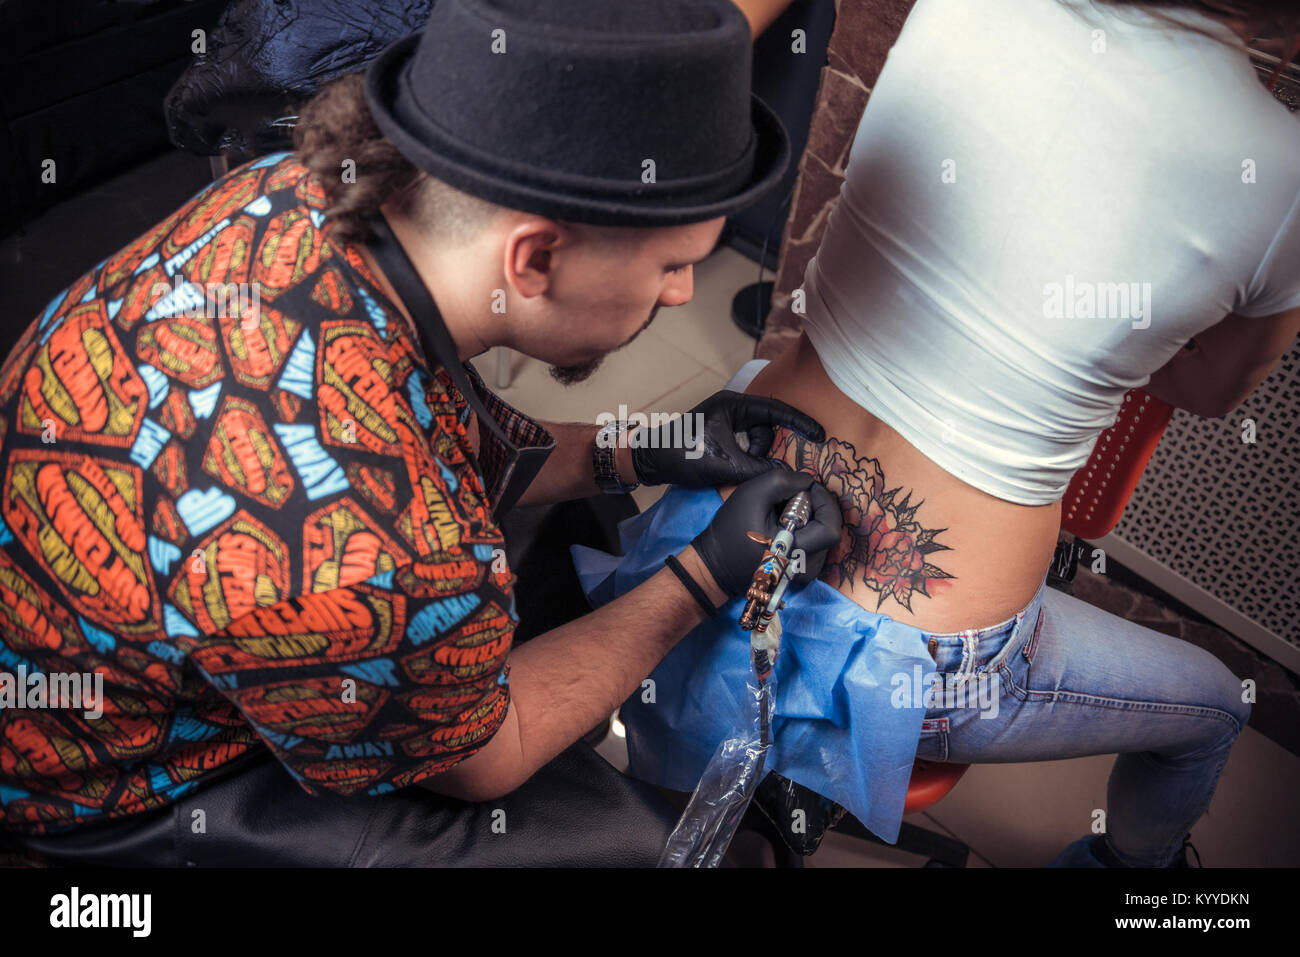 Master of the art of tattooing shows tattoo paint tatoo salon - Stock Image